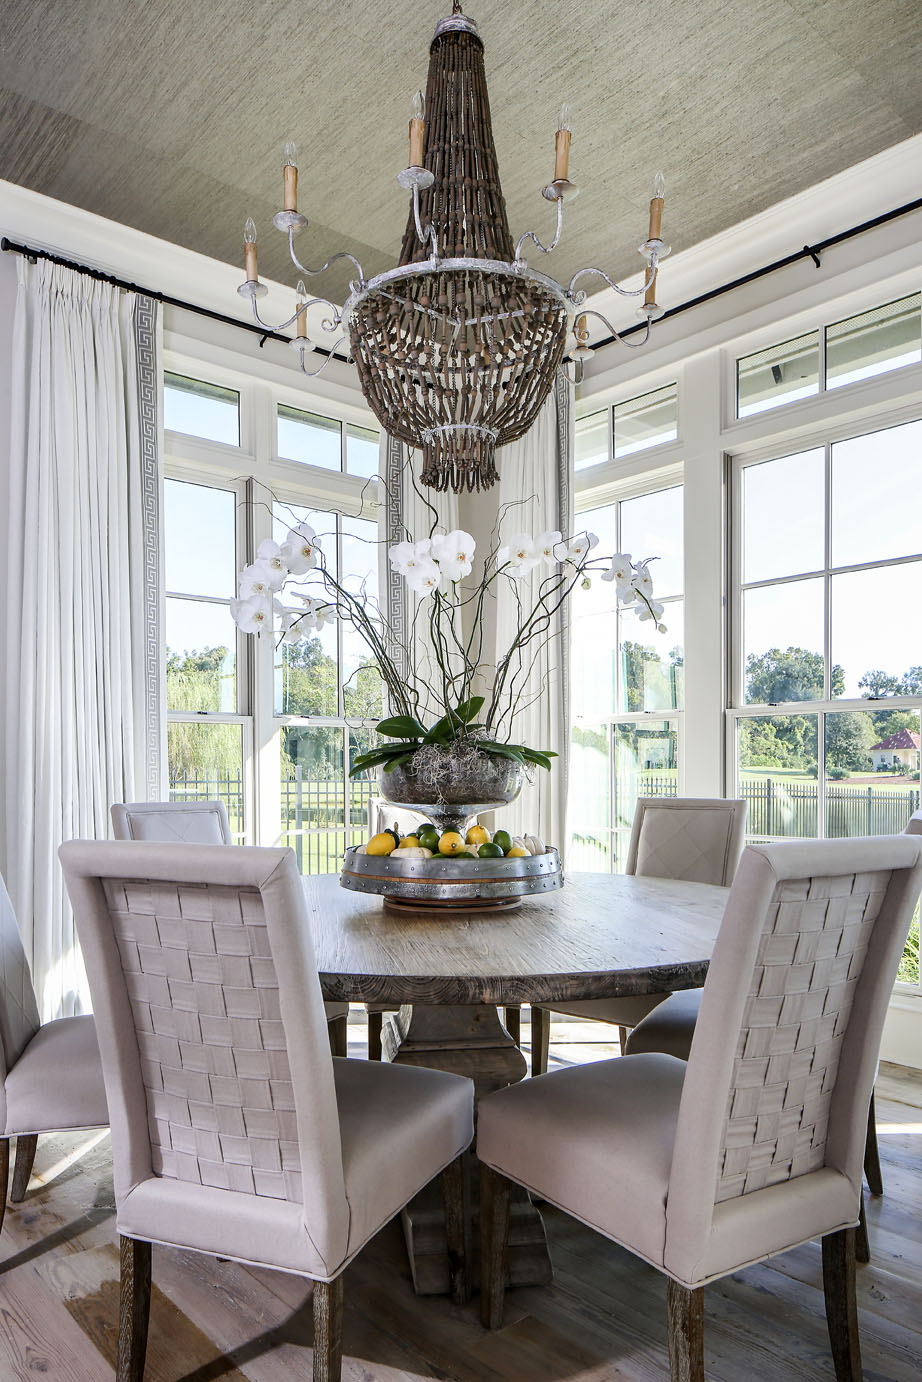 The round dining table and woven-back chairs are from Dixon Smith Interiors.